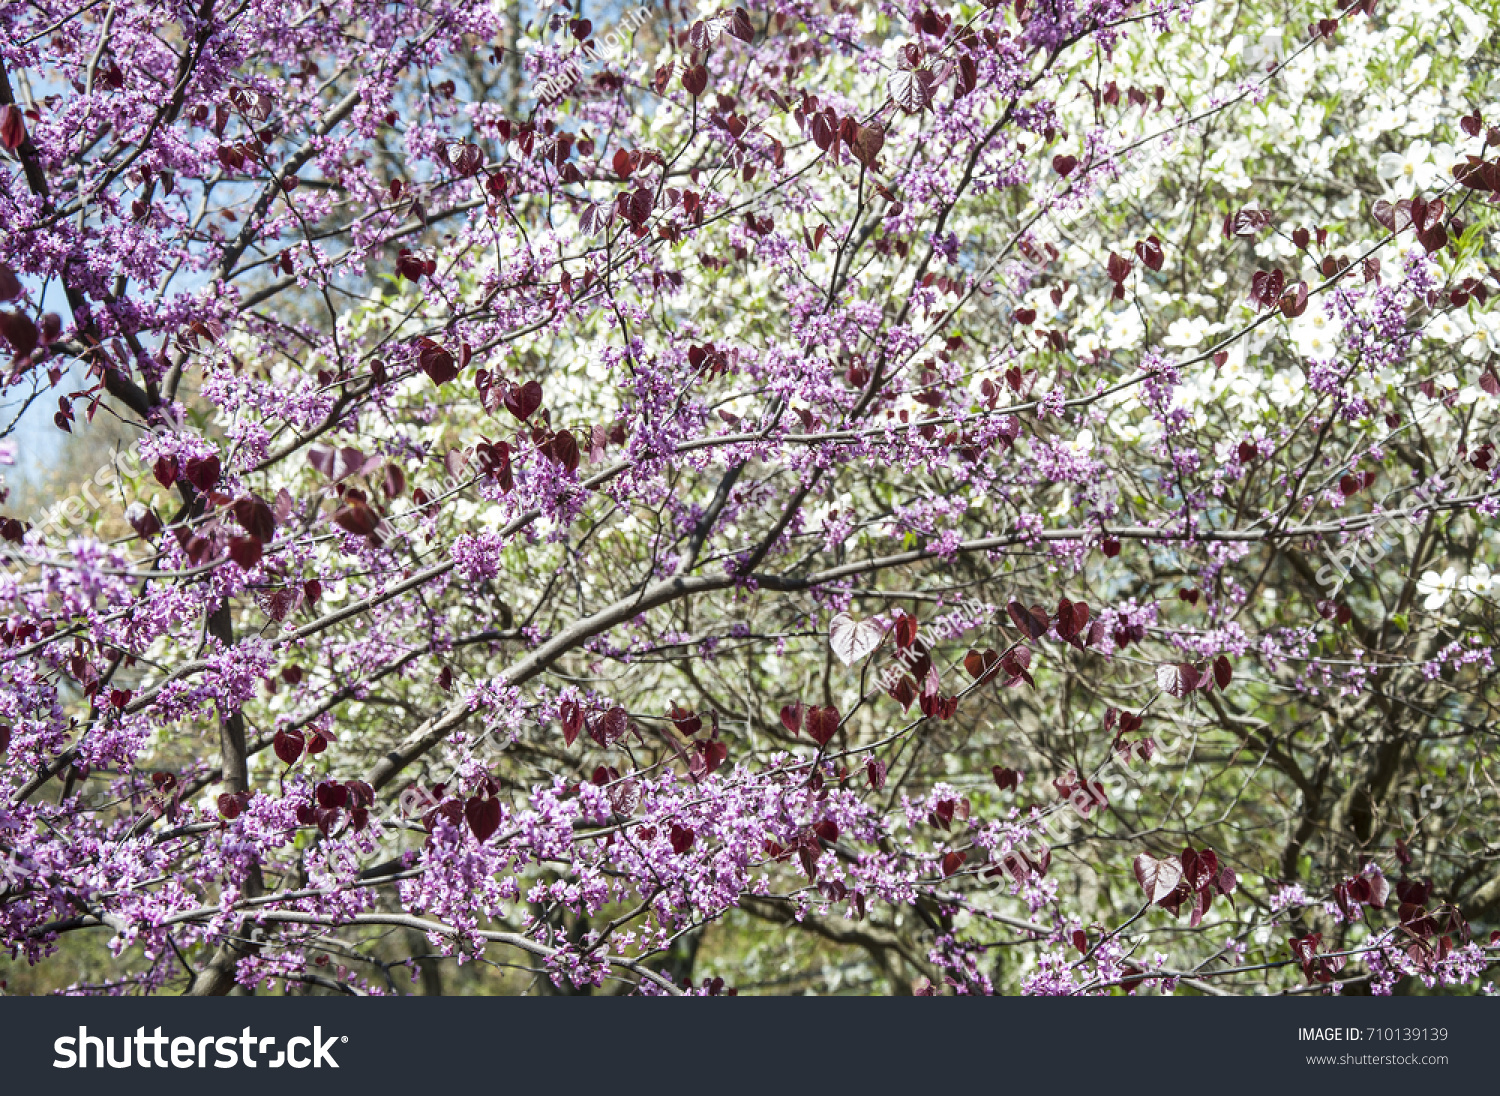 Pansy Redbud Tree In Bloom Close Up With Pink Flowers And Red Heart